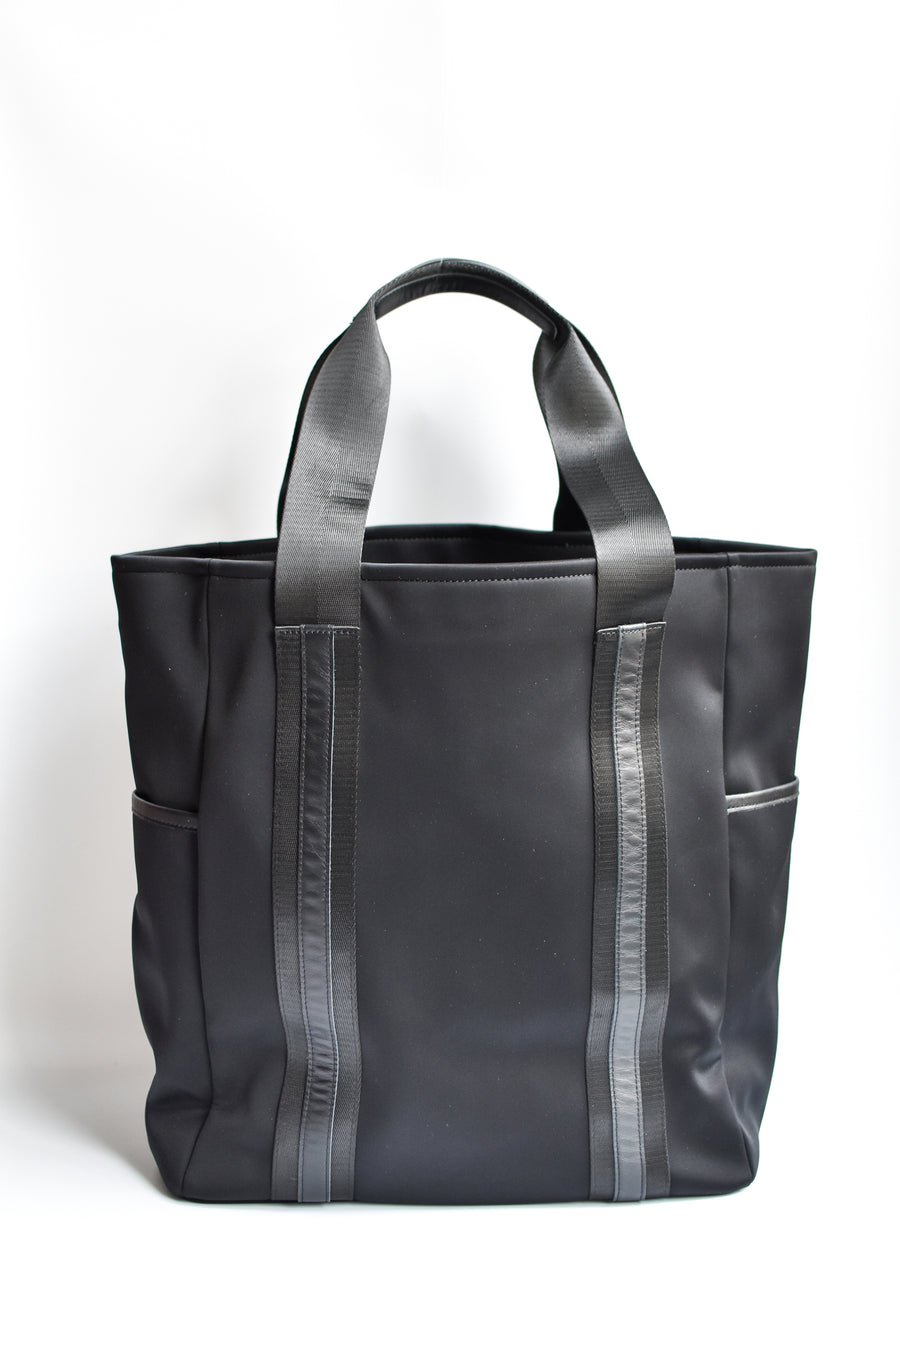 Black neoprene tote bag with high shine cinch top closure and leather details.